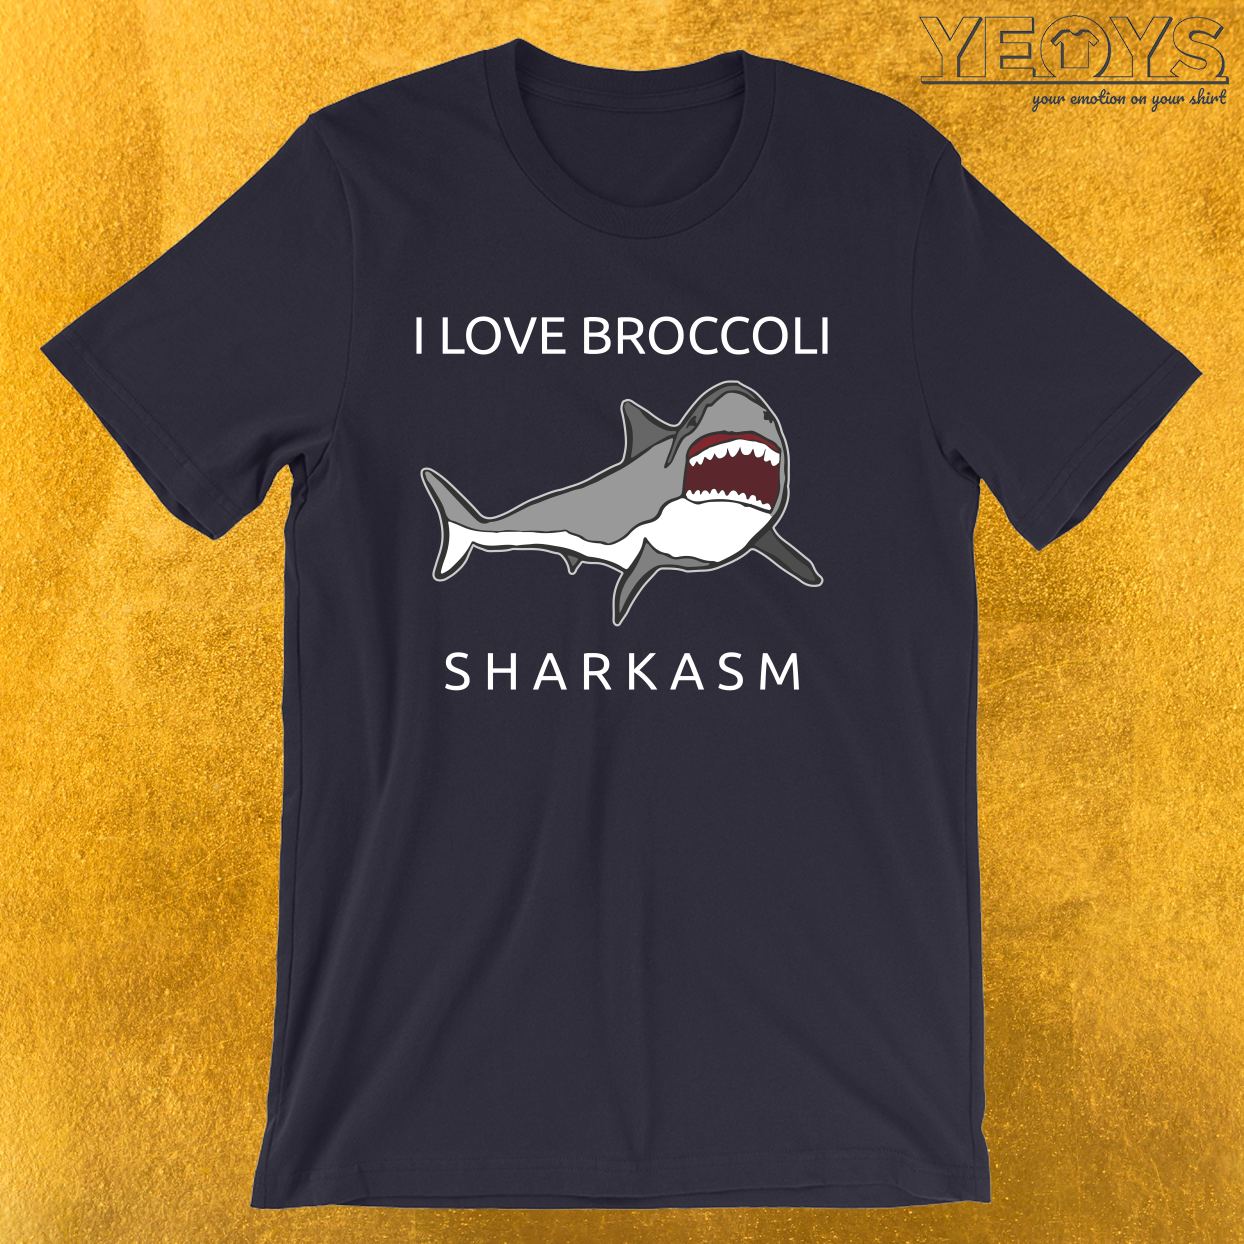 Funny Shark Pun – I Love Broccoli Sharkasm Tee